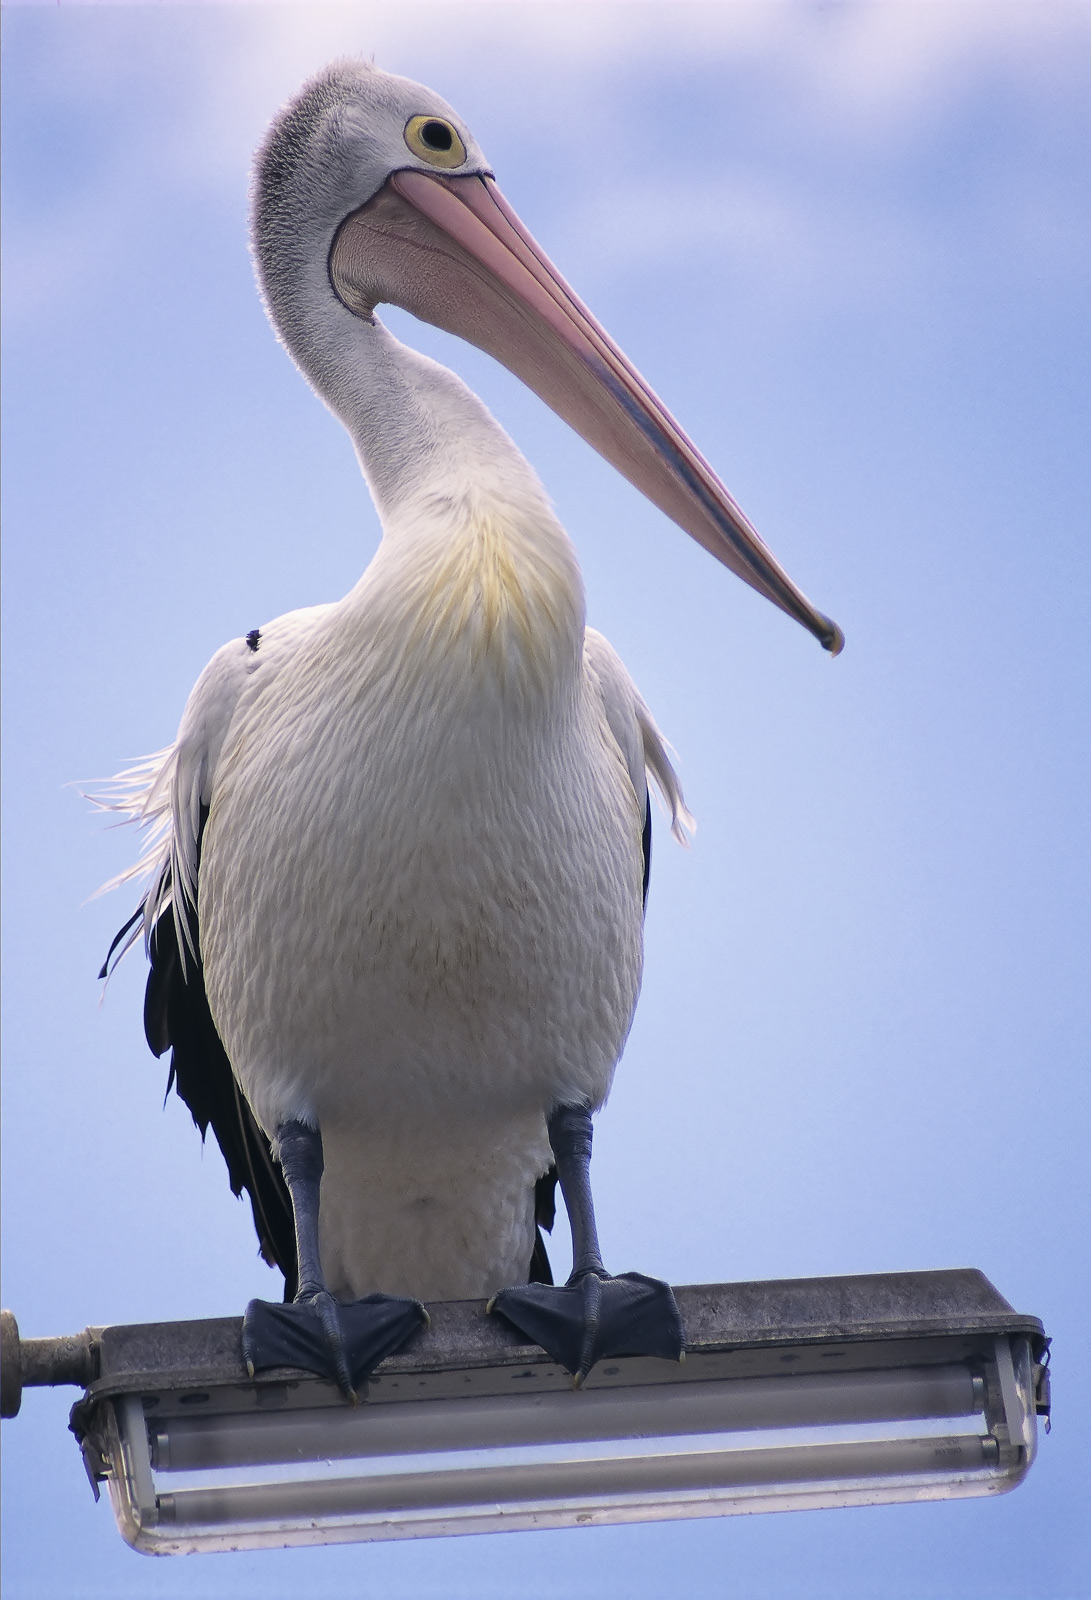 There were quite a few pelicans around this area but this one really caught my attention when it landed on top of a street lamp...